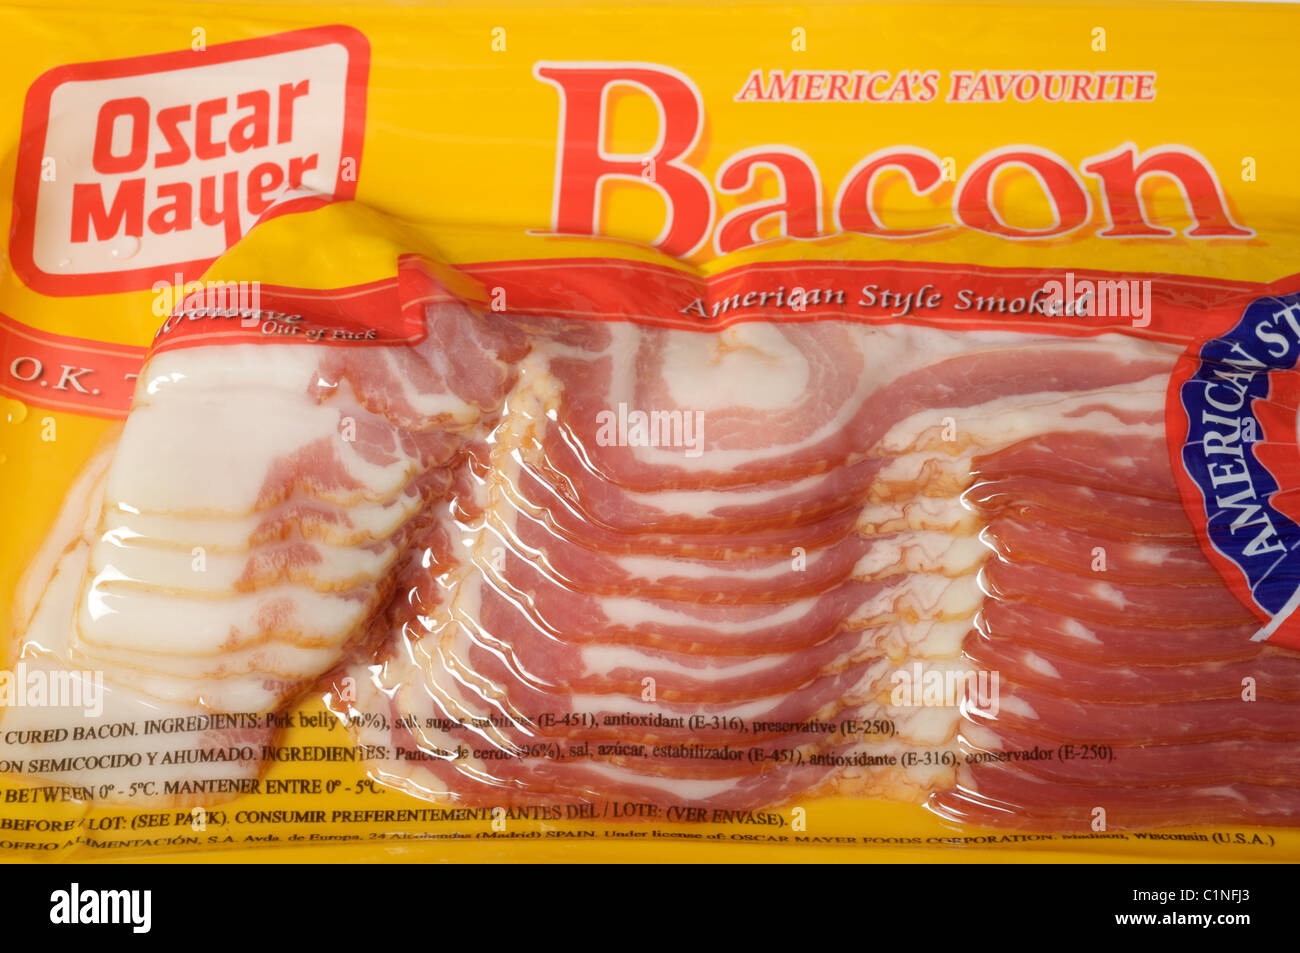 Oscar Mayer American bacon - Stock Image